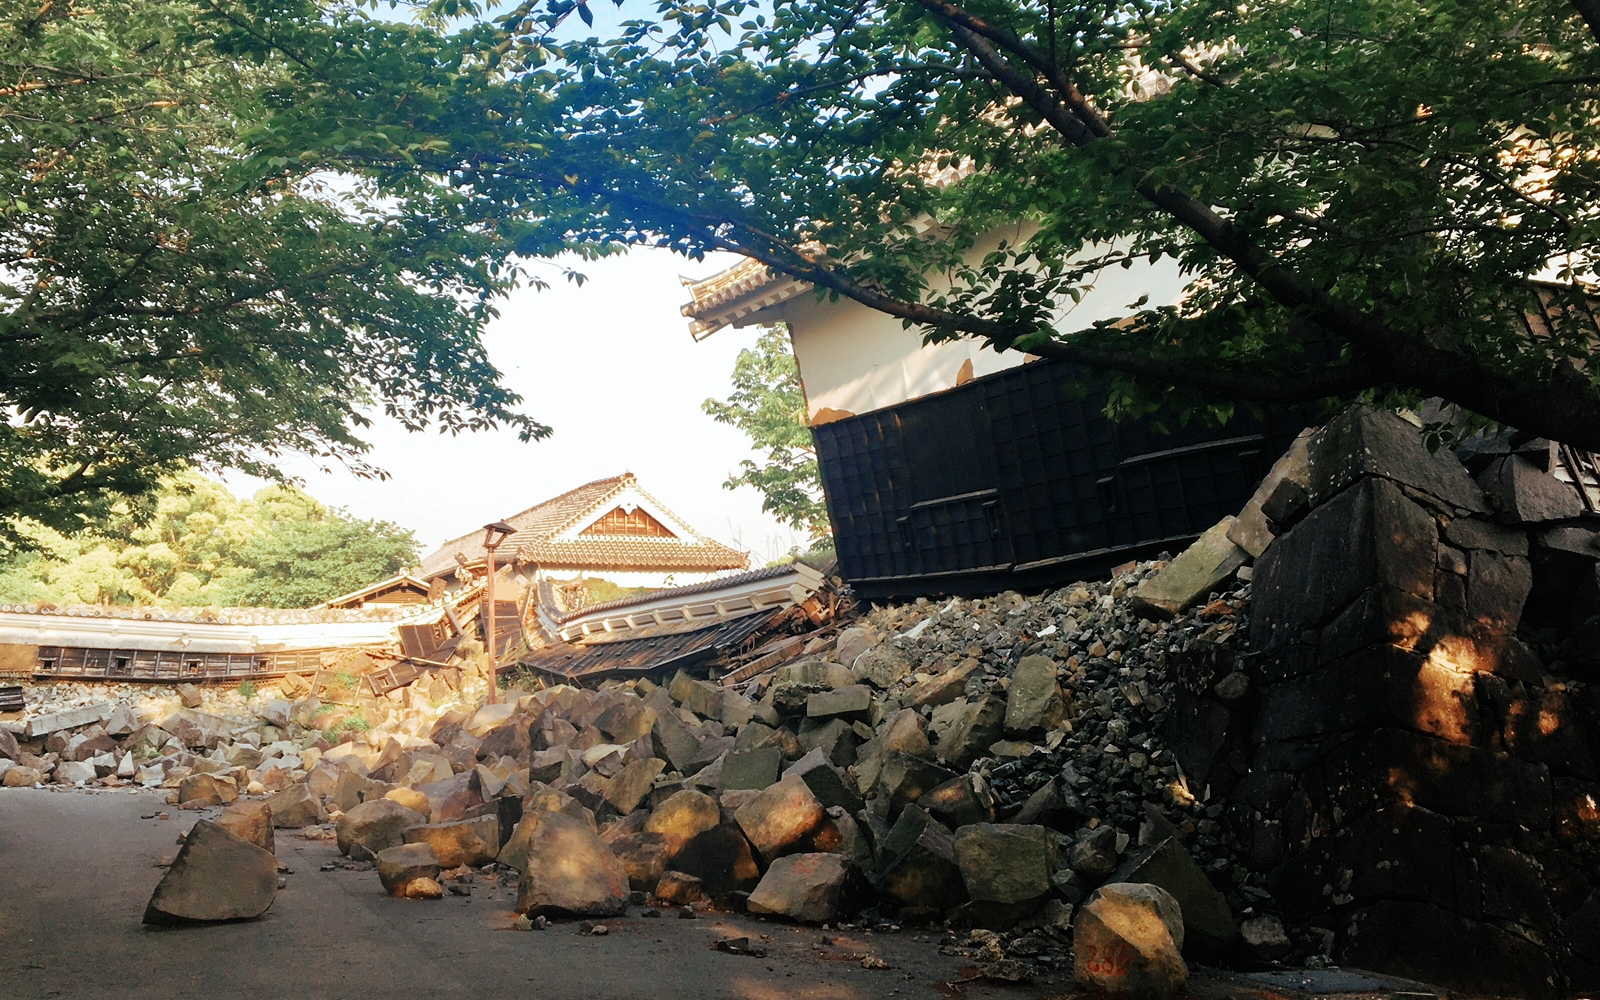 Restricted entry near a collapsed structure on the grounds of Kumamoto Castle.